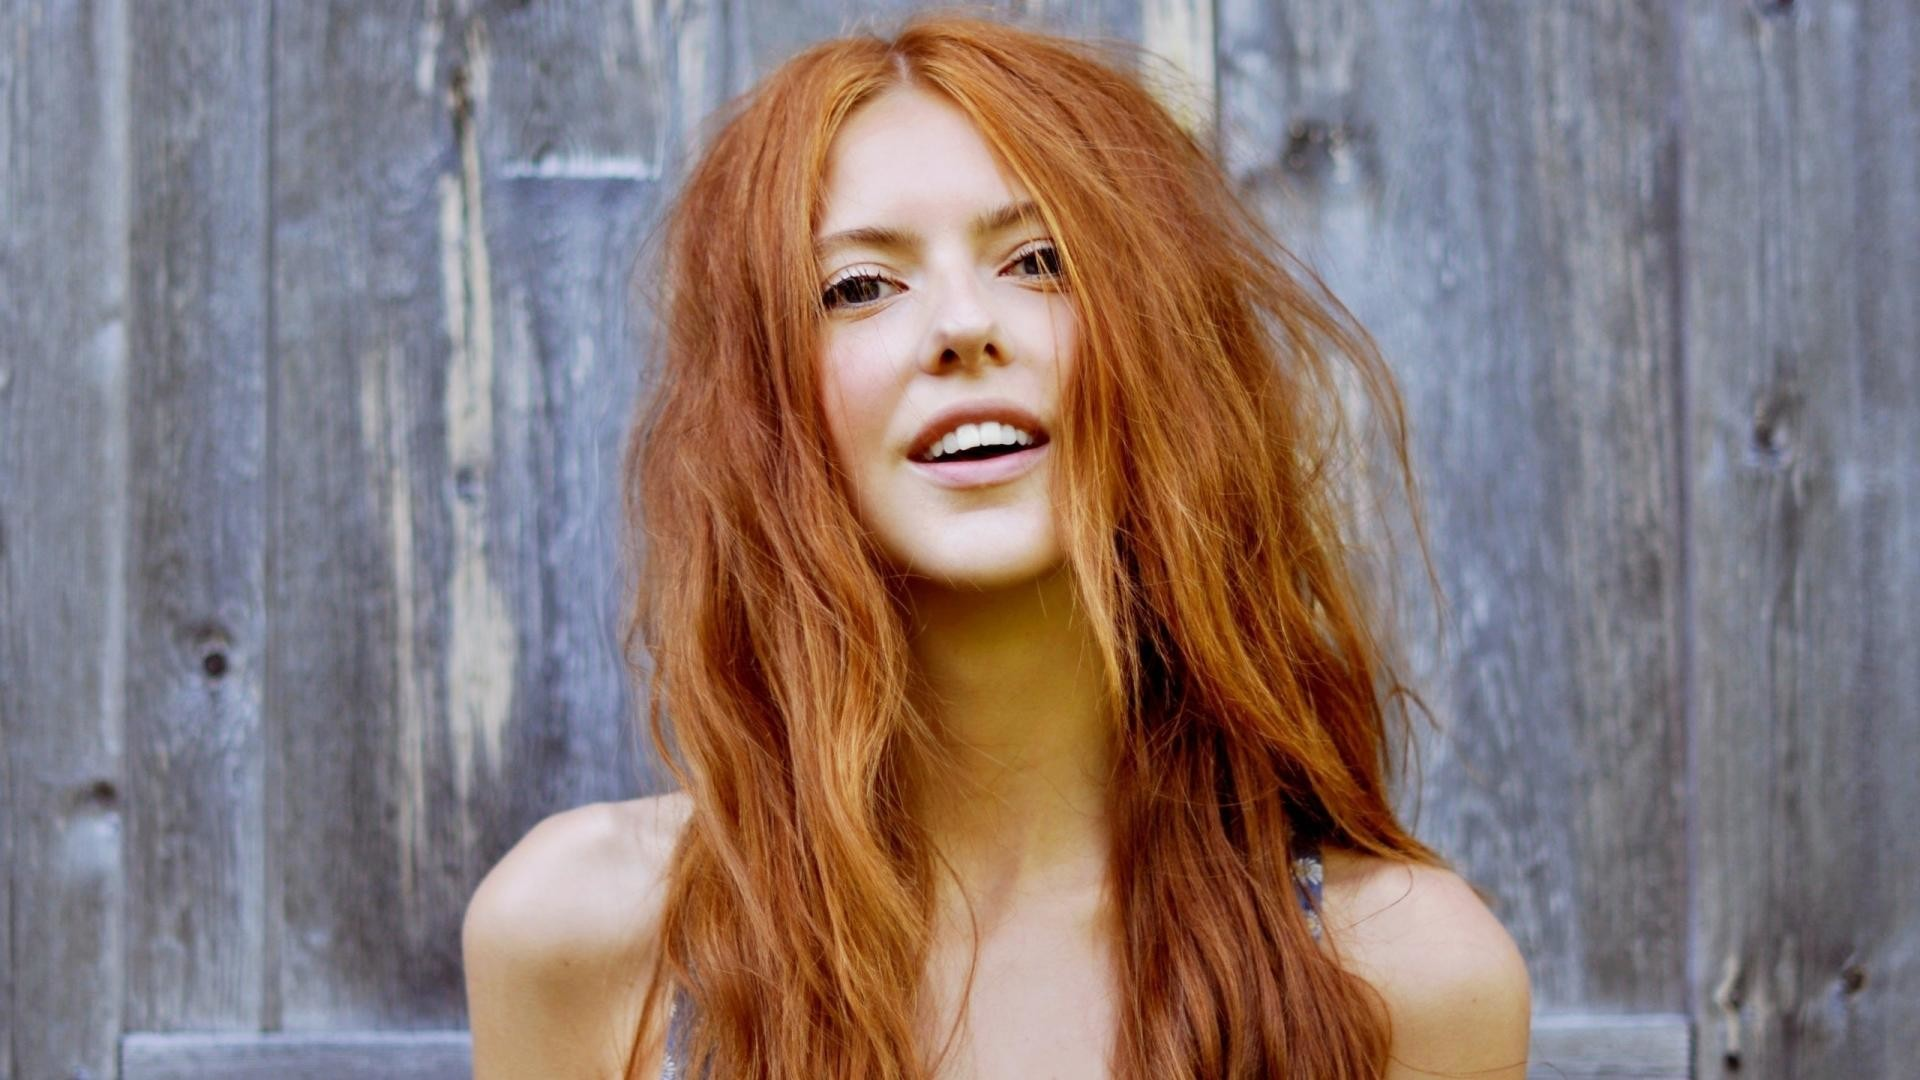 77+ Best HD Redhead Wallpapers, 6370944 px